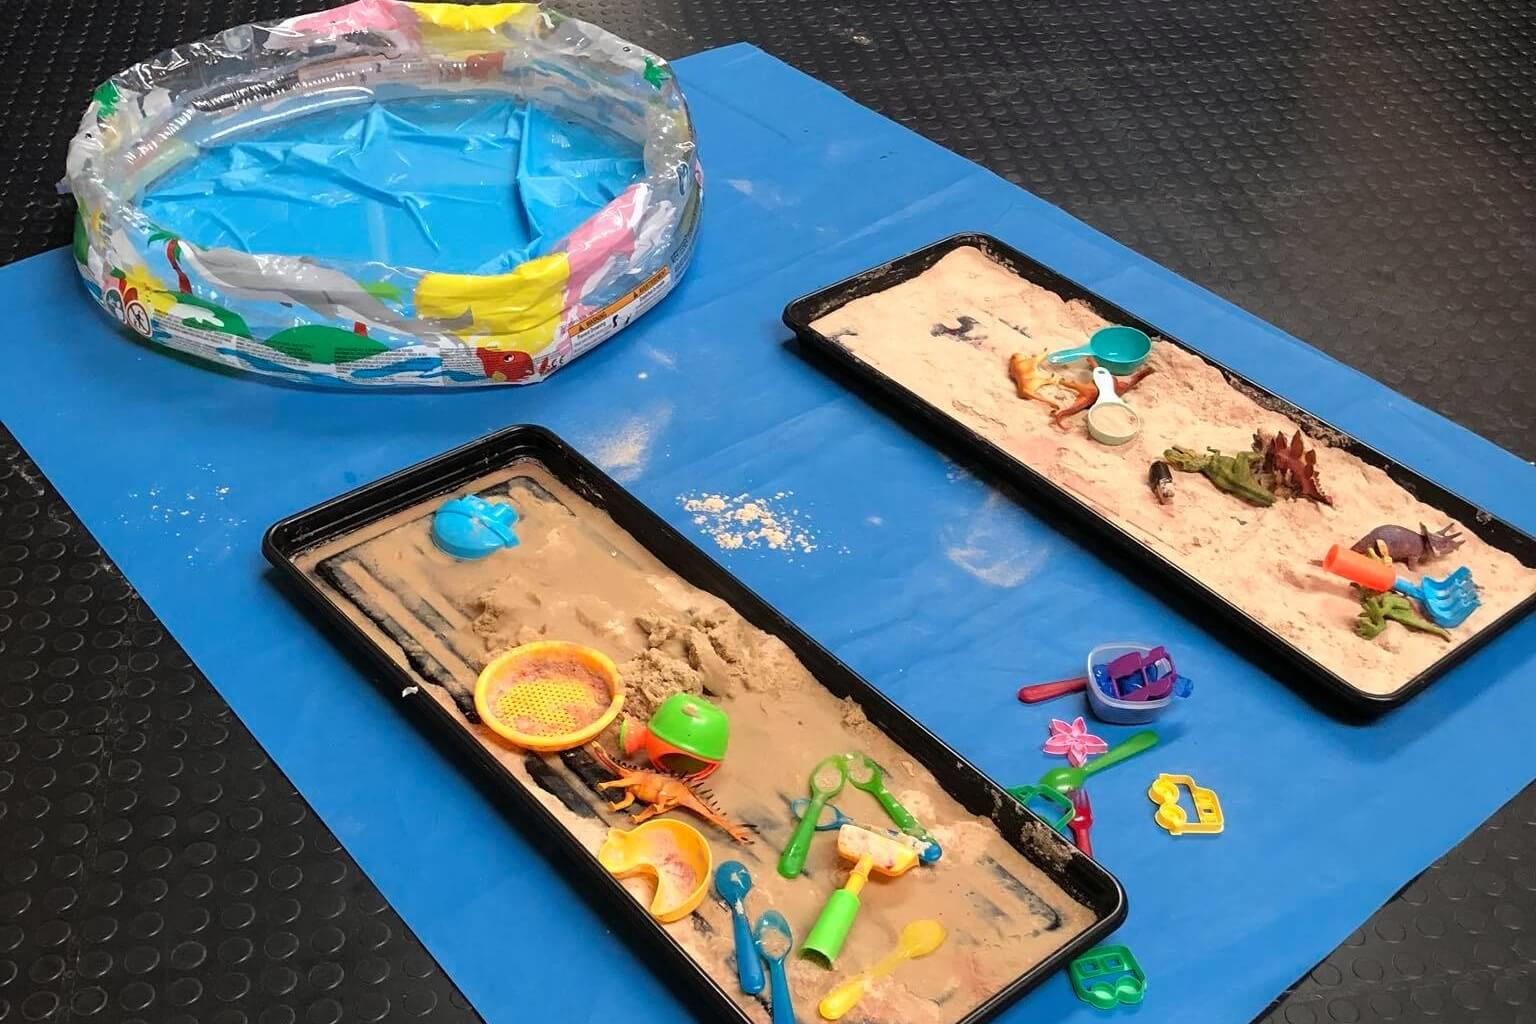 A indoor sand pit with army soldiers in